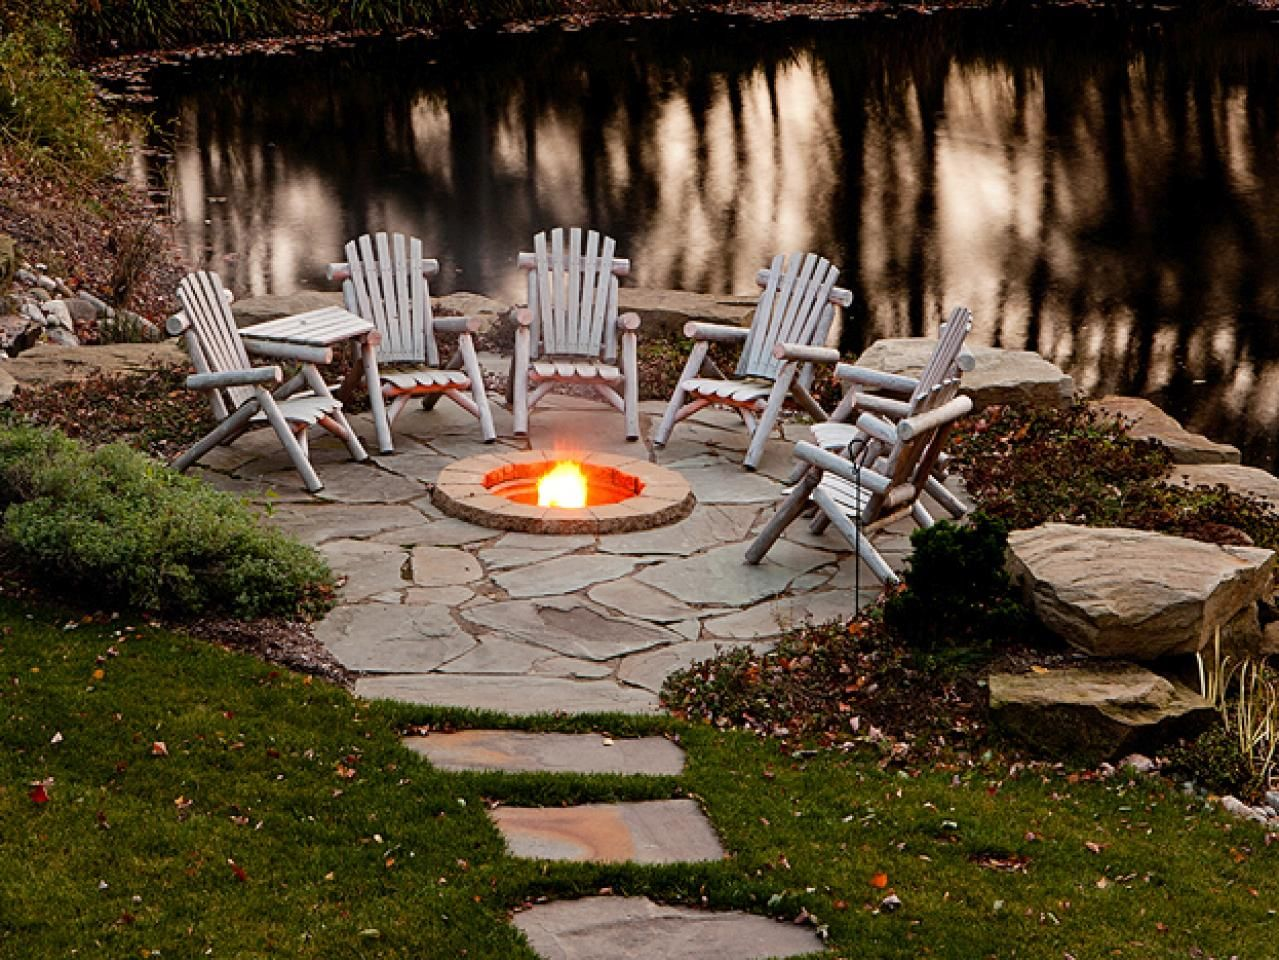 Outdoor Living Spaces Gallery Best Outdoor Living Spaces Backyard Fire Fire Pit Backyard Outdoor Fire Pit